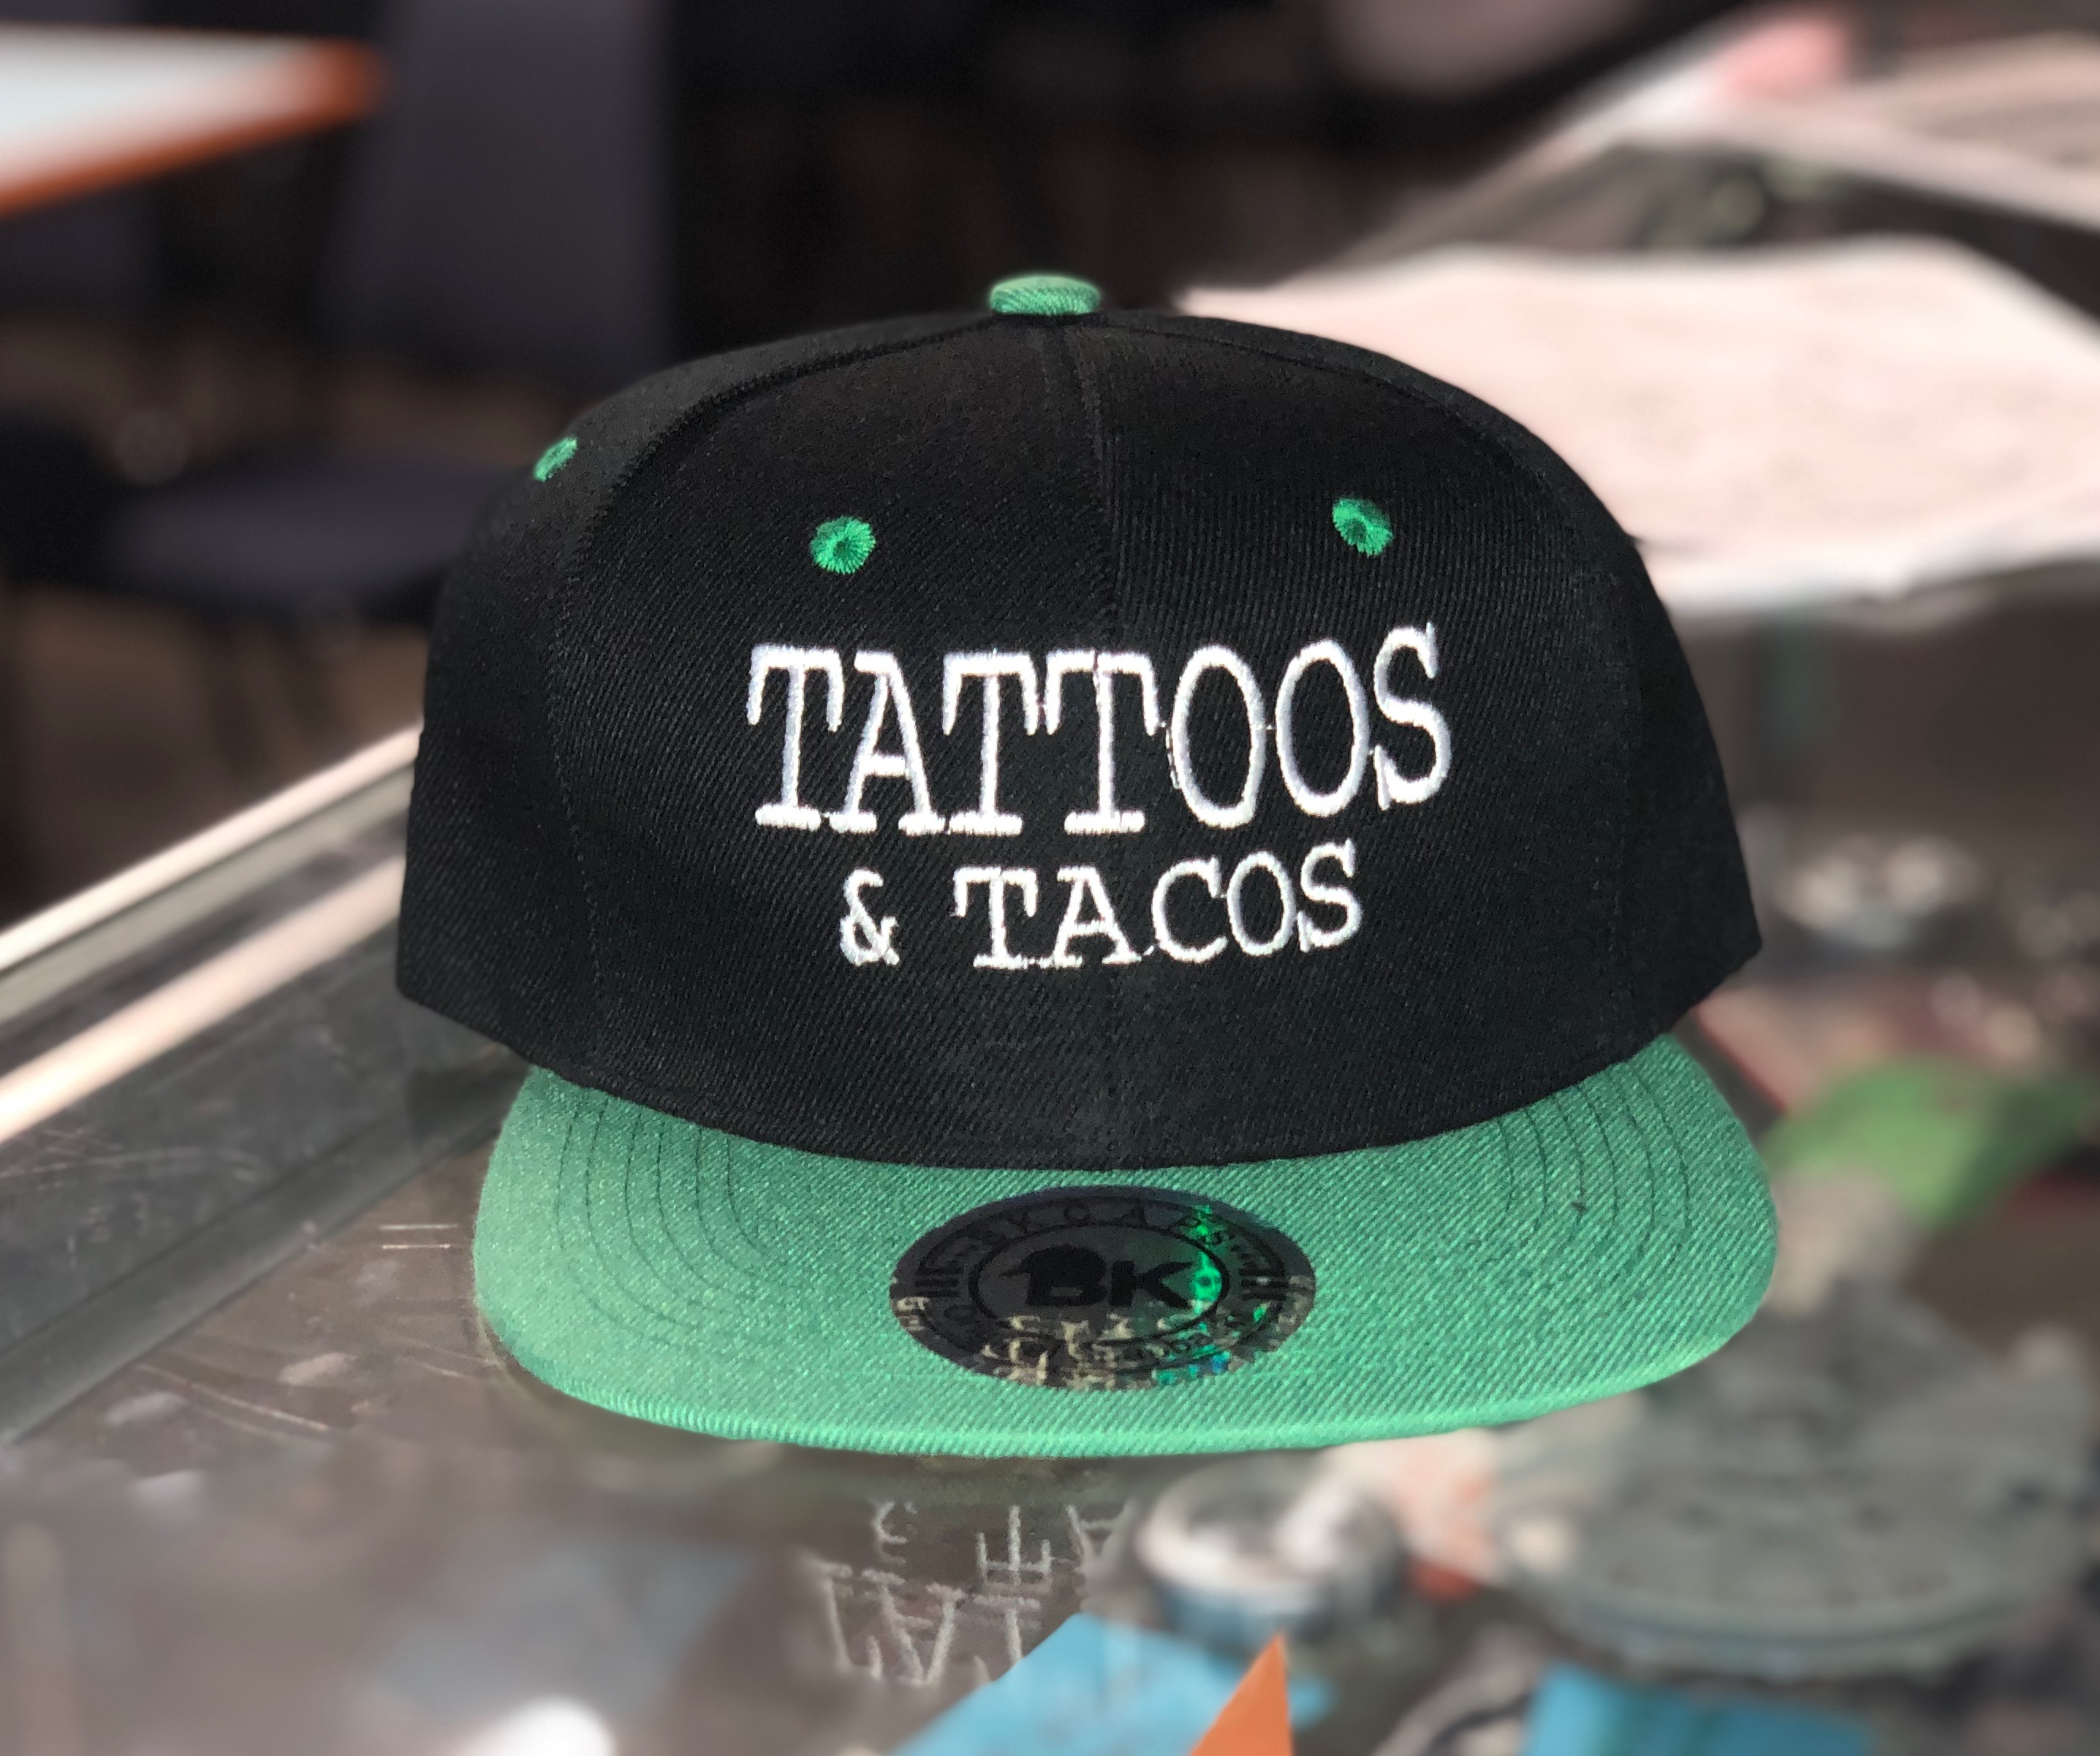 Tattoos and Tacos Hat $20